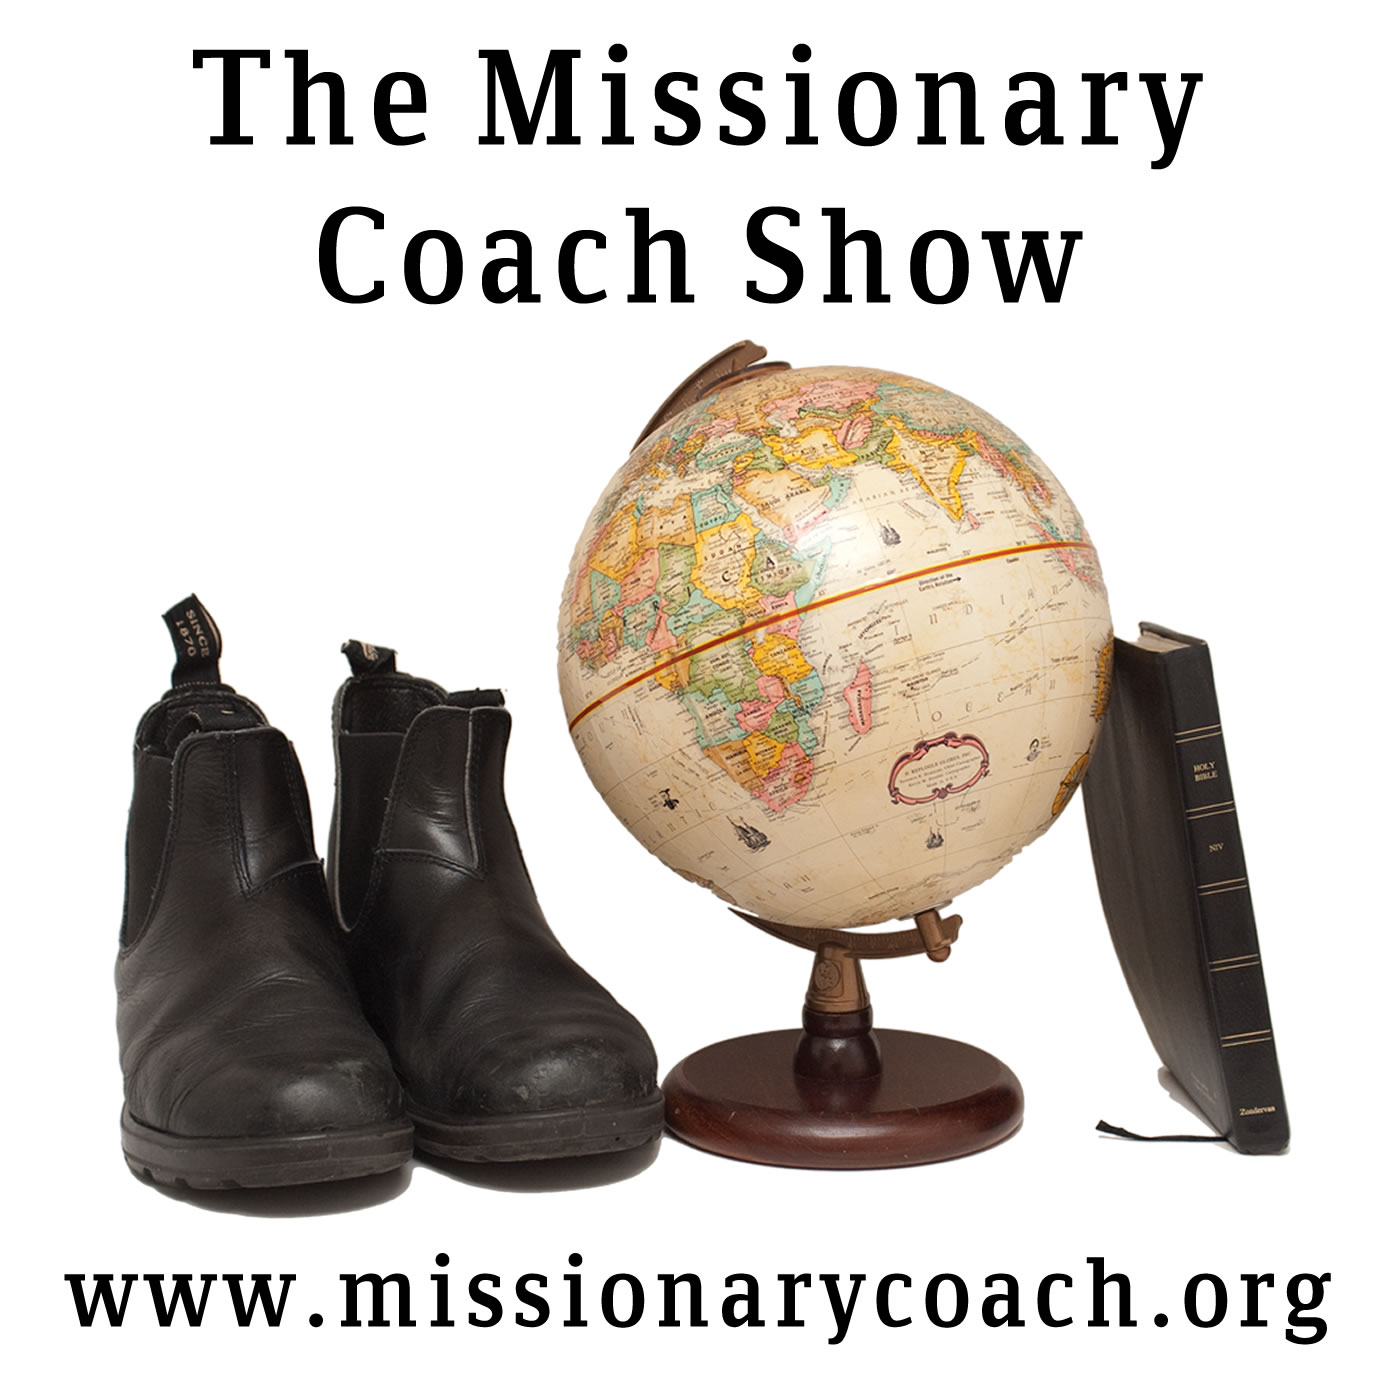 The Missionary Coach Show with Bill Hutchison